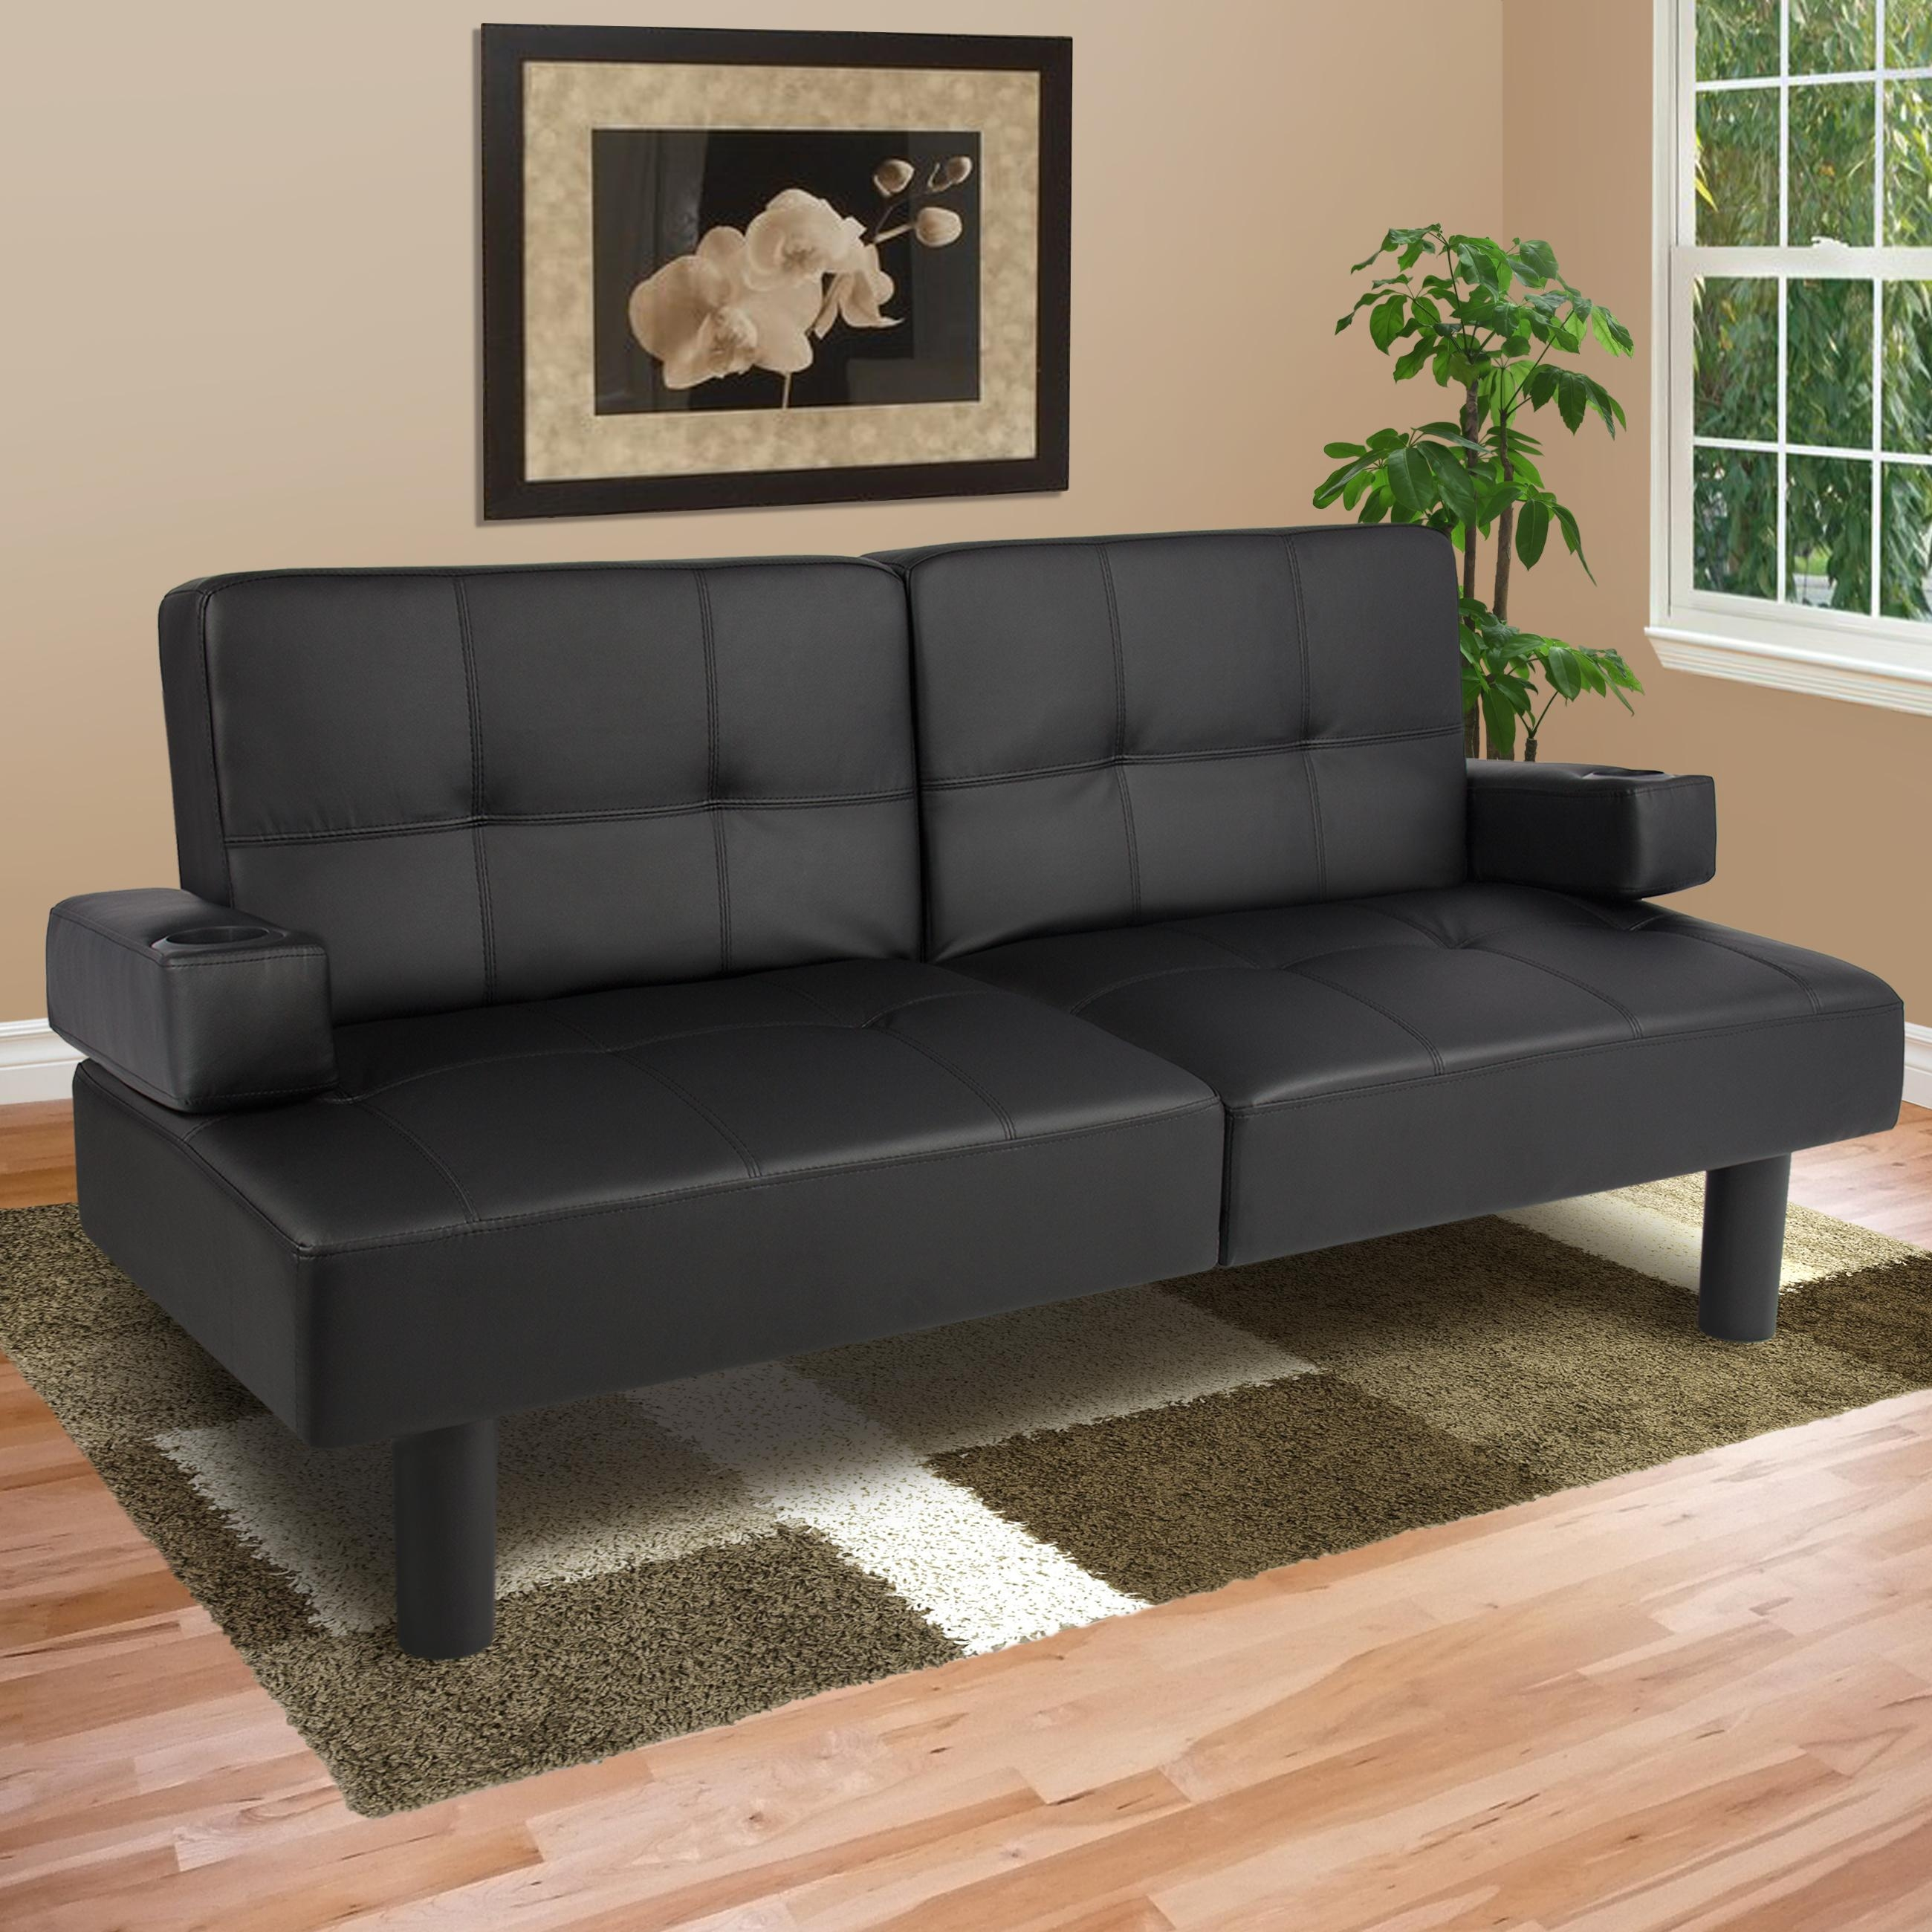 Leather Faux Fold Down Futon Sofa Bed Couch Sleeper Furniture In Convertible Sofa Chair Bed (Image 18 of 20)